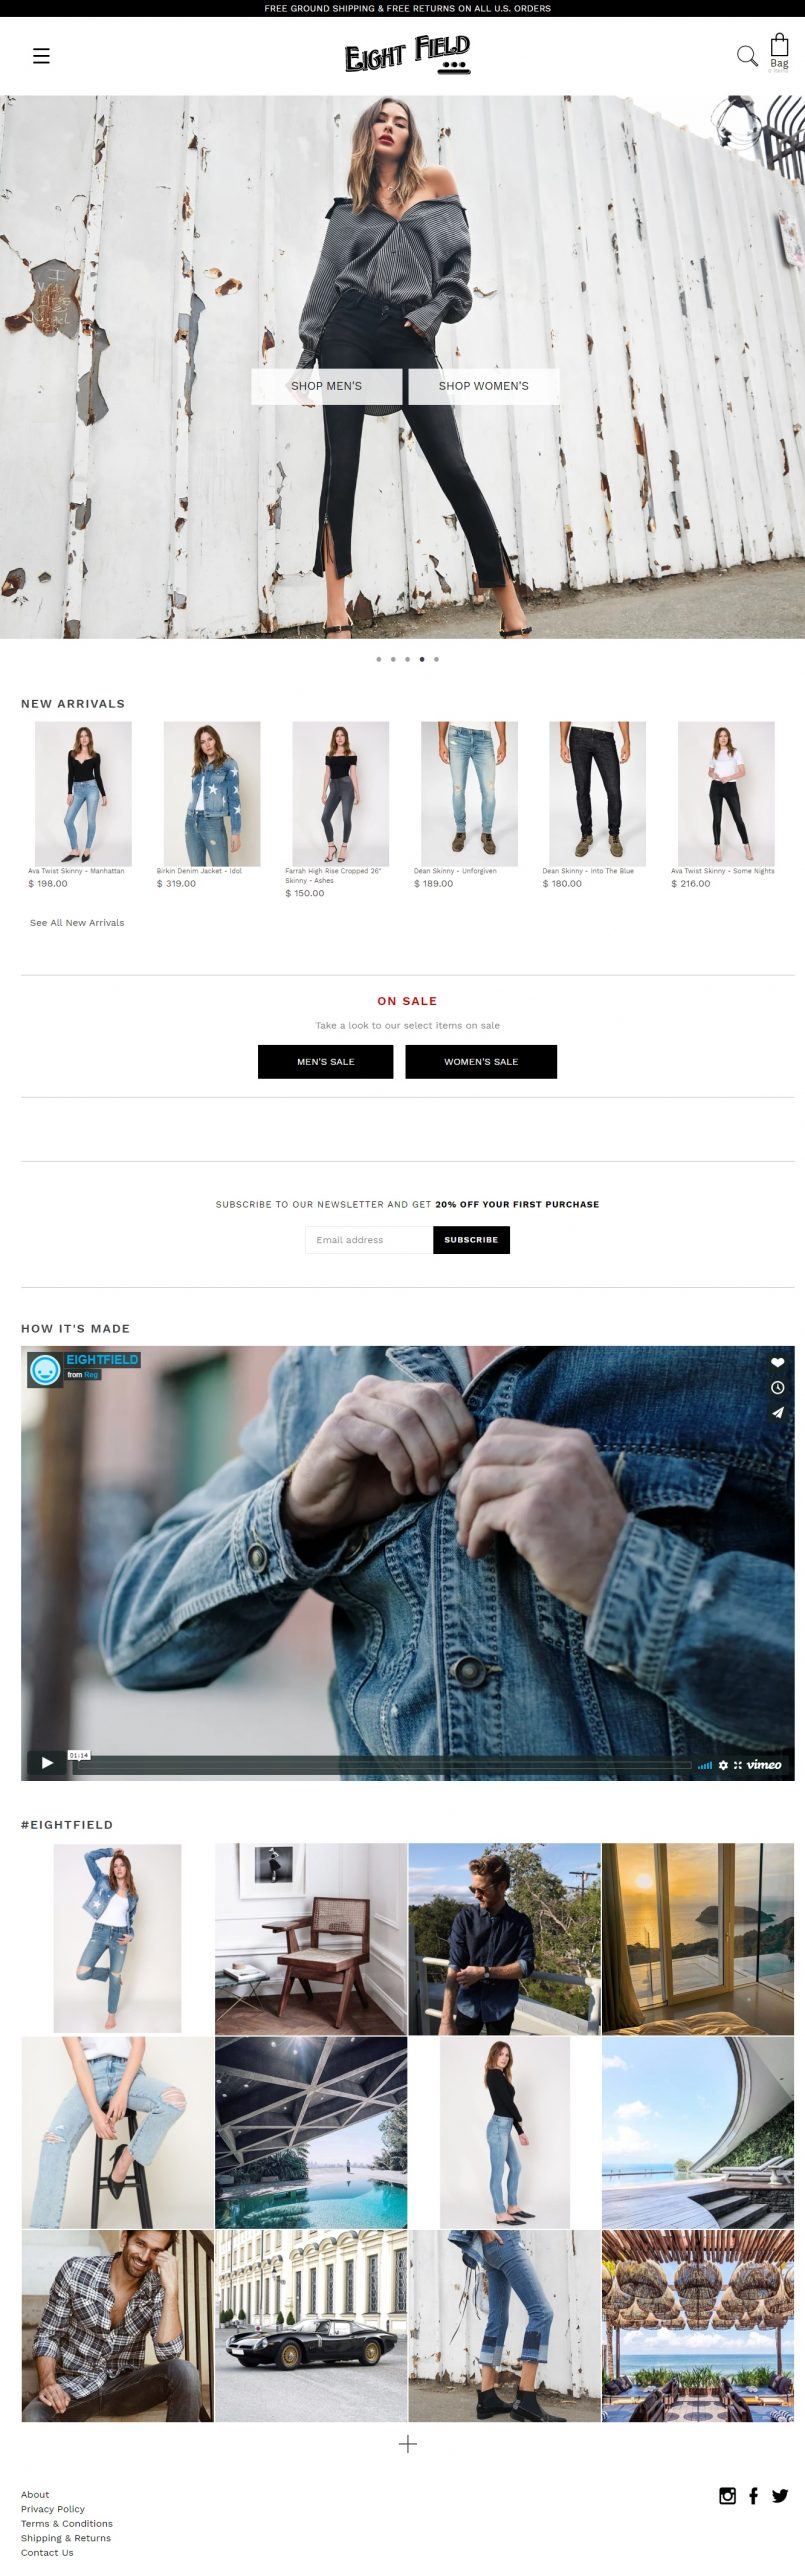 Eighfield Shopify Website